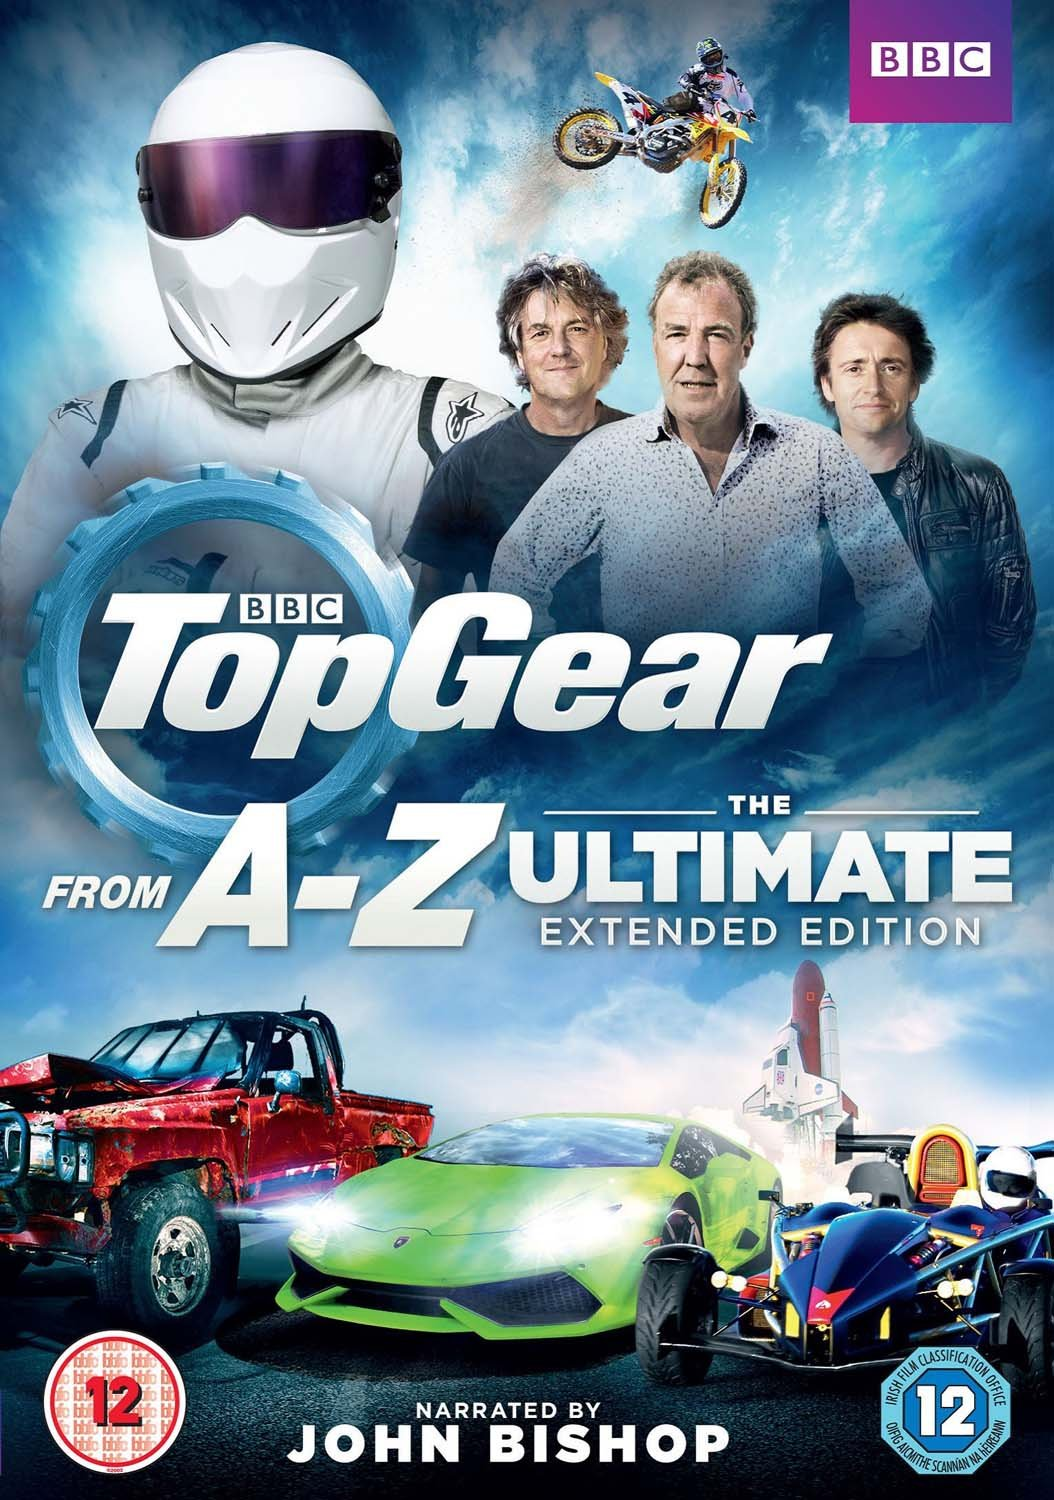 Top Gear - A-Z: The Ultimate Extended Edition Reino Unido DVD: Amazon.es: Jeremy Clarkson, Richard Hammond, James May, The Stig, John Bishop, Jeremy Clarkson, Richard Hammond, Lucy Kenwright: Cine y Series TV